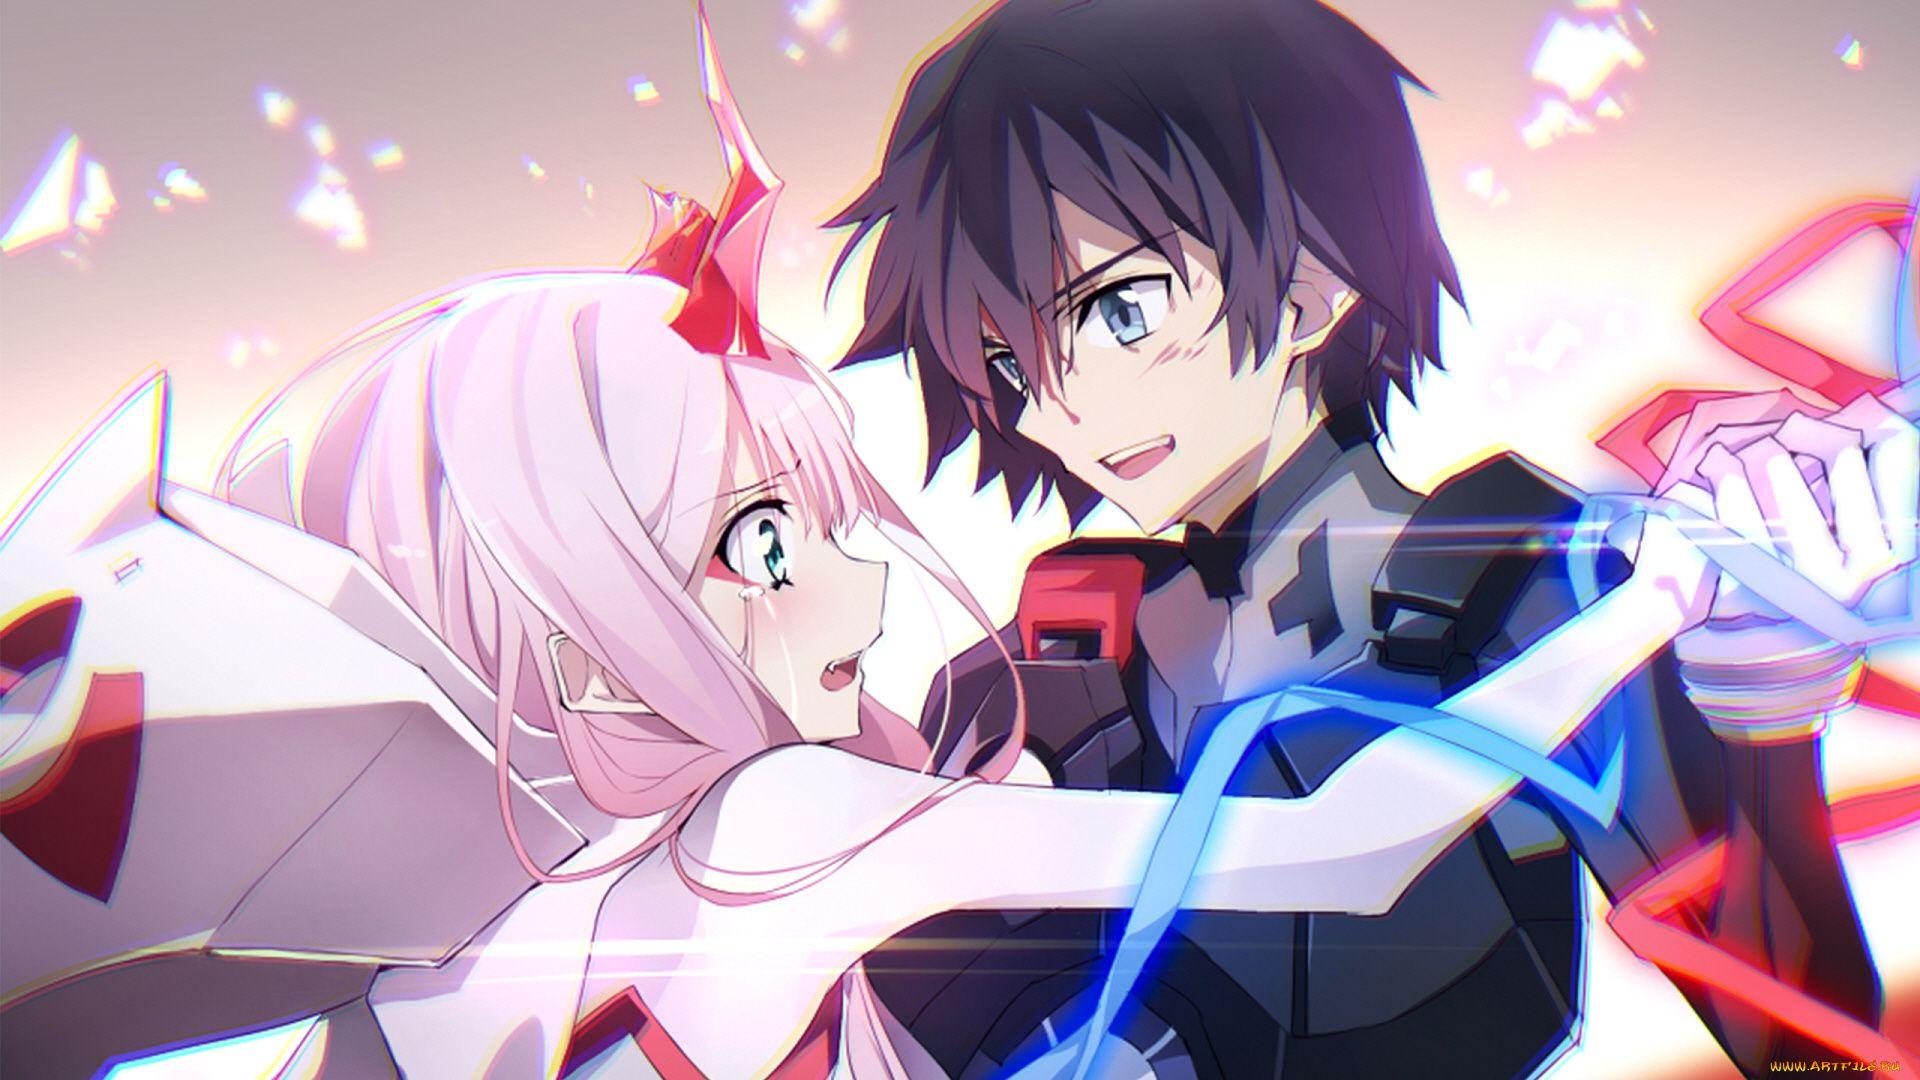 22 Darling In The Franxx Wallpapers Wallpaperboat